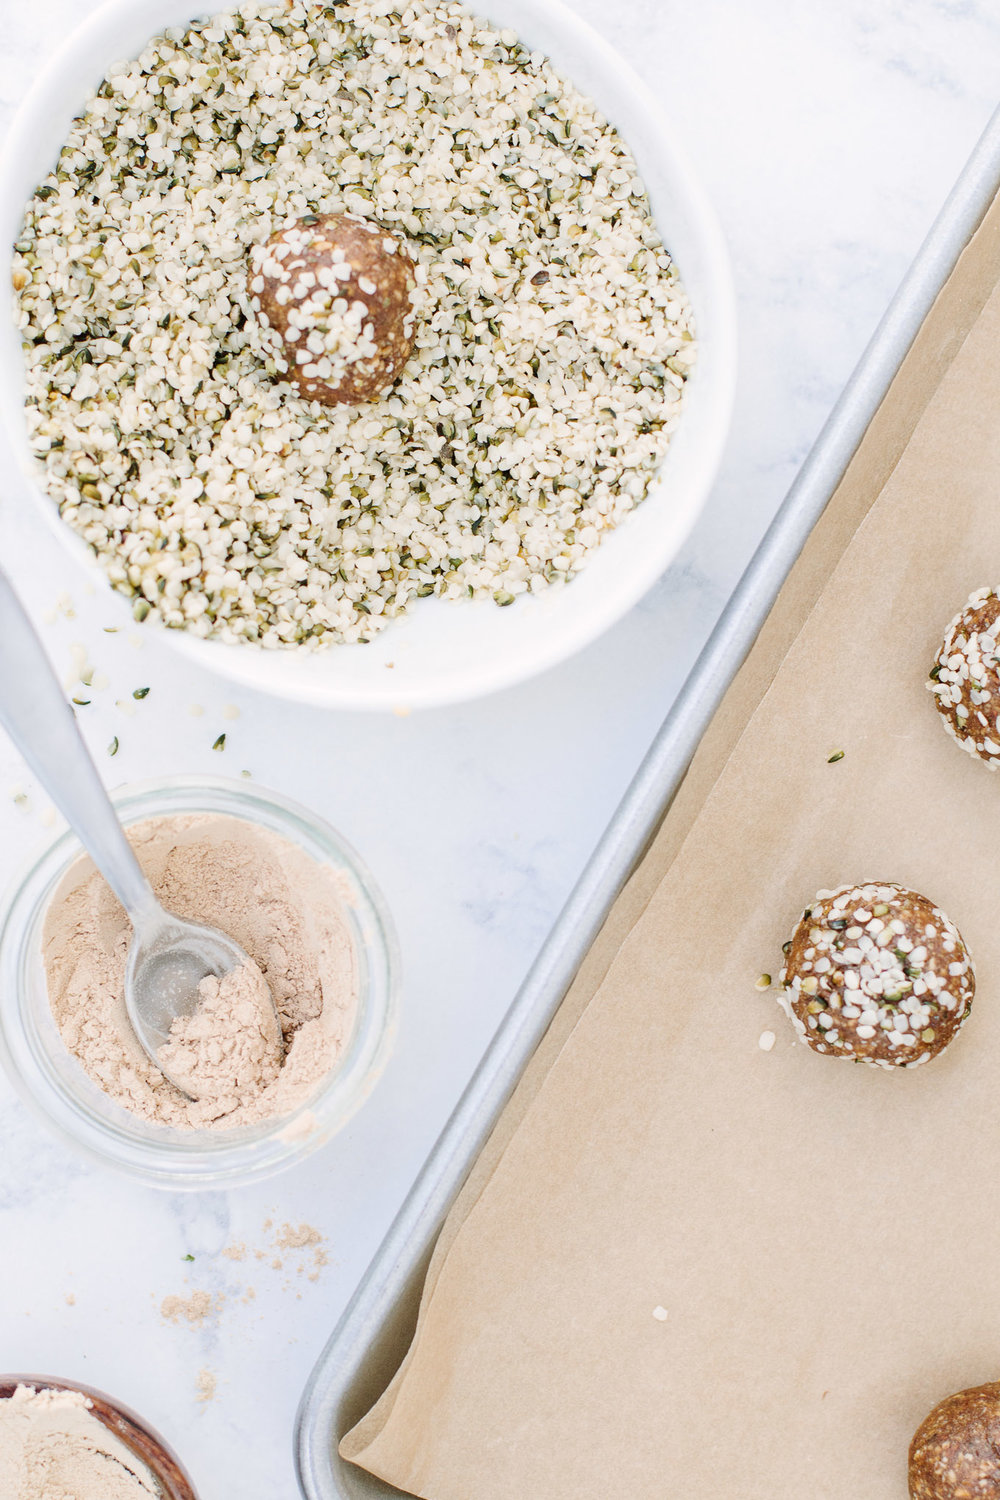 Adaptogen Snack Balls - rolled in hemp seeds